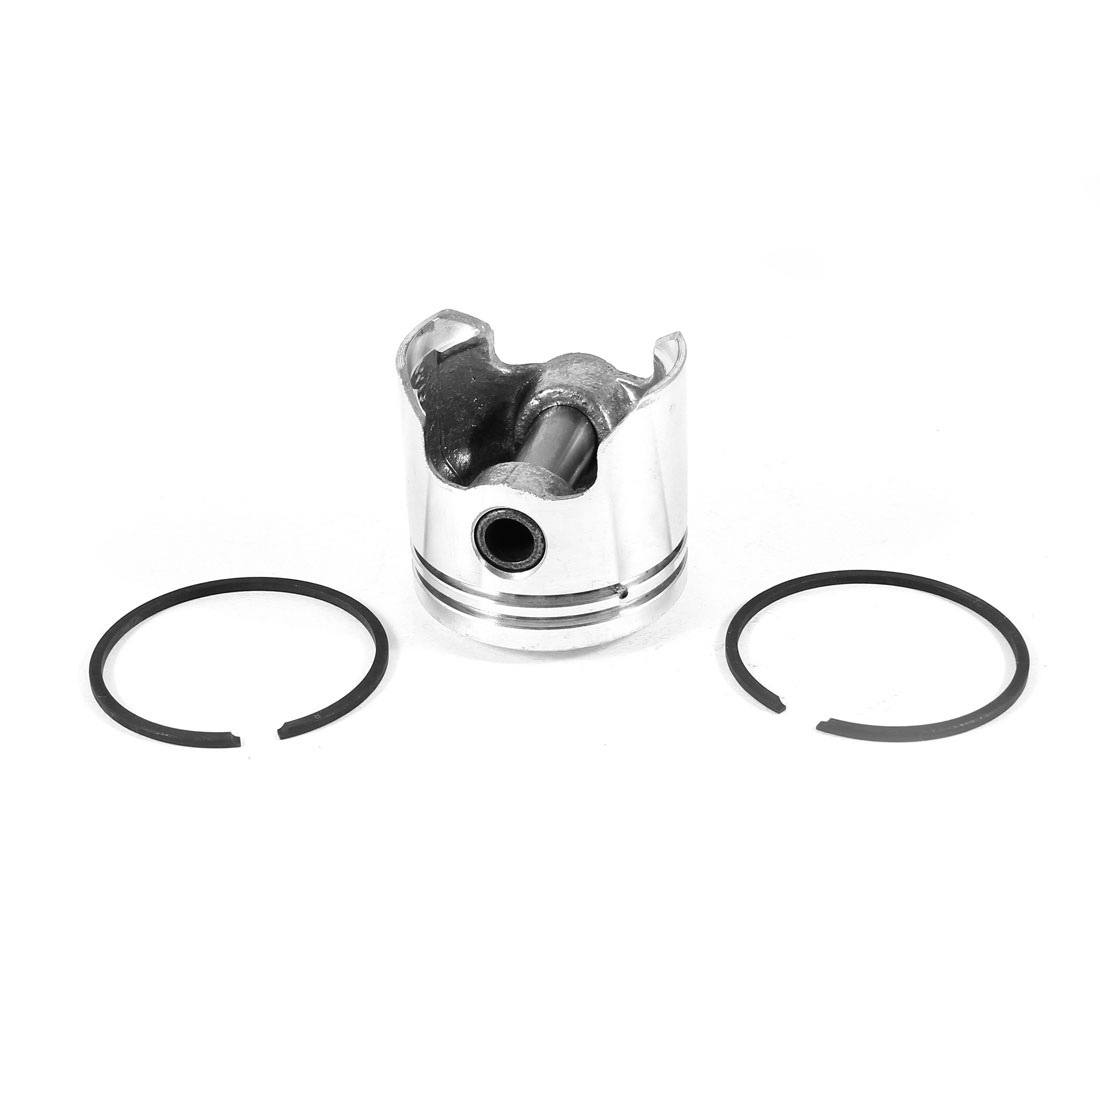 Silver Tone 10mm Bore Dia Piston Pin Ring Set for Air Compressor